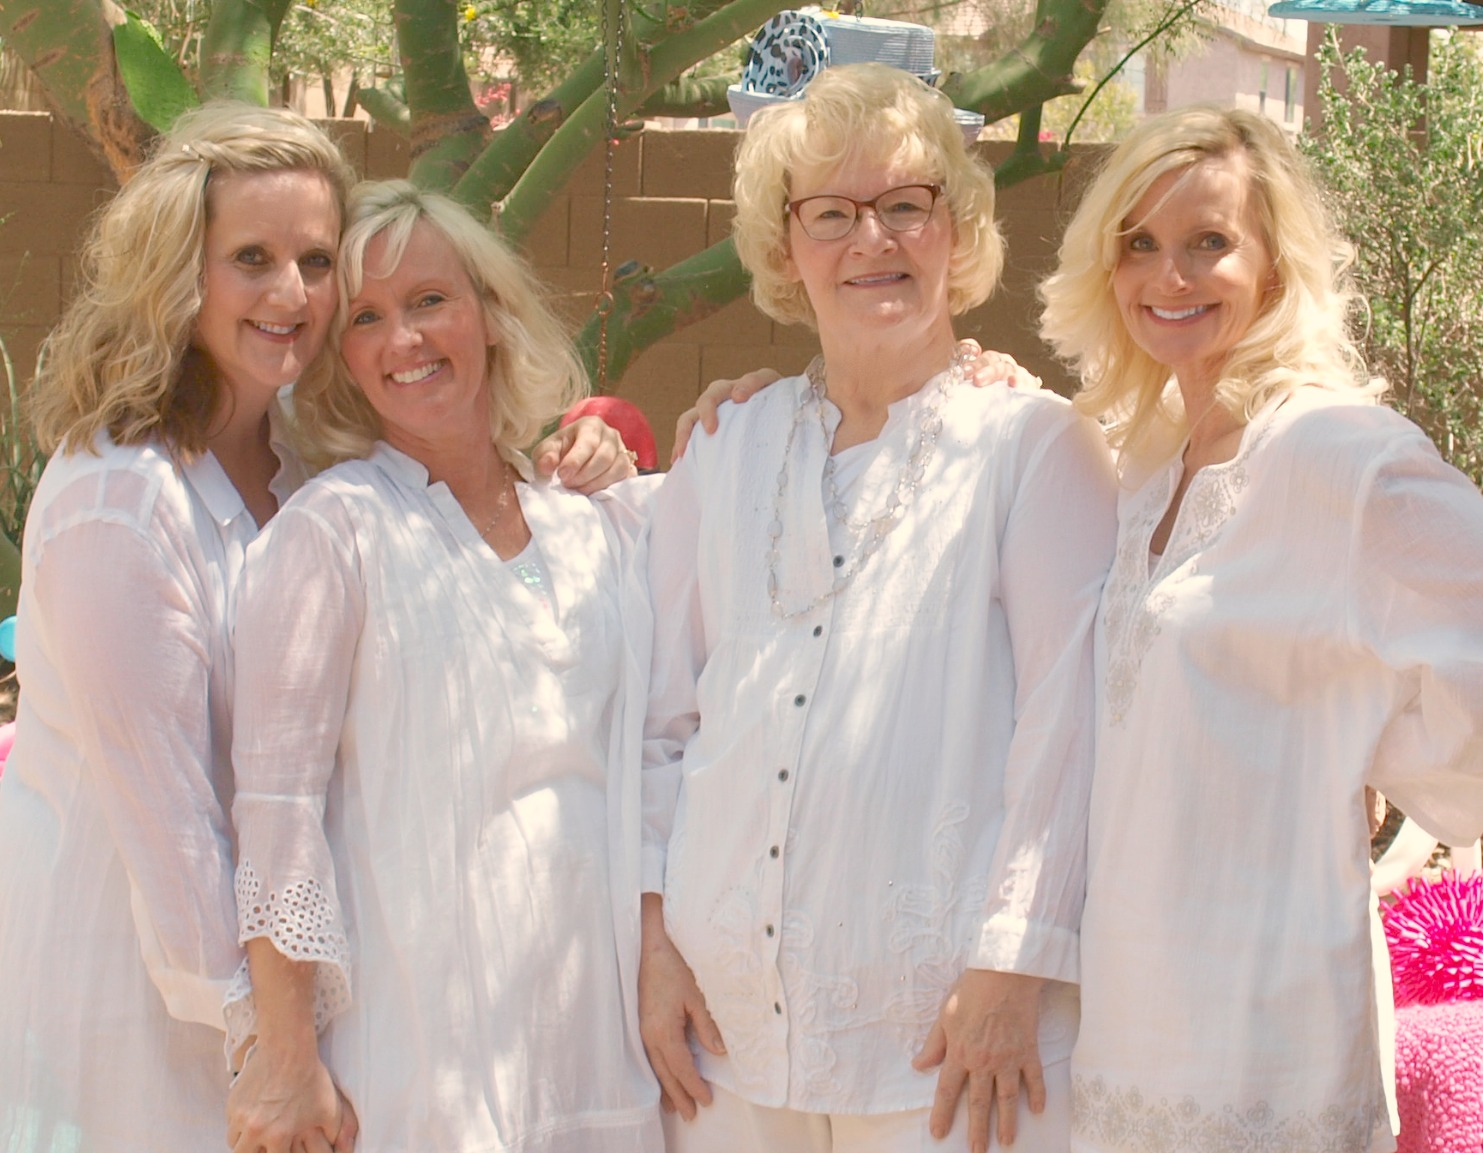 Breast cancer previvors and breast cancer survivor. BRCA sisterhood. Blondes in white in Arizona